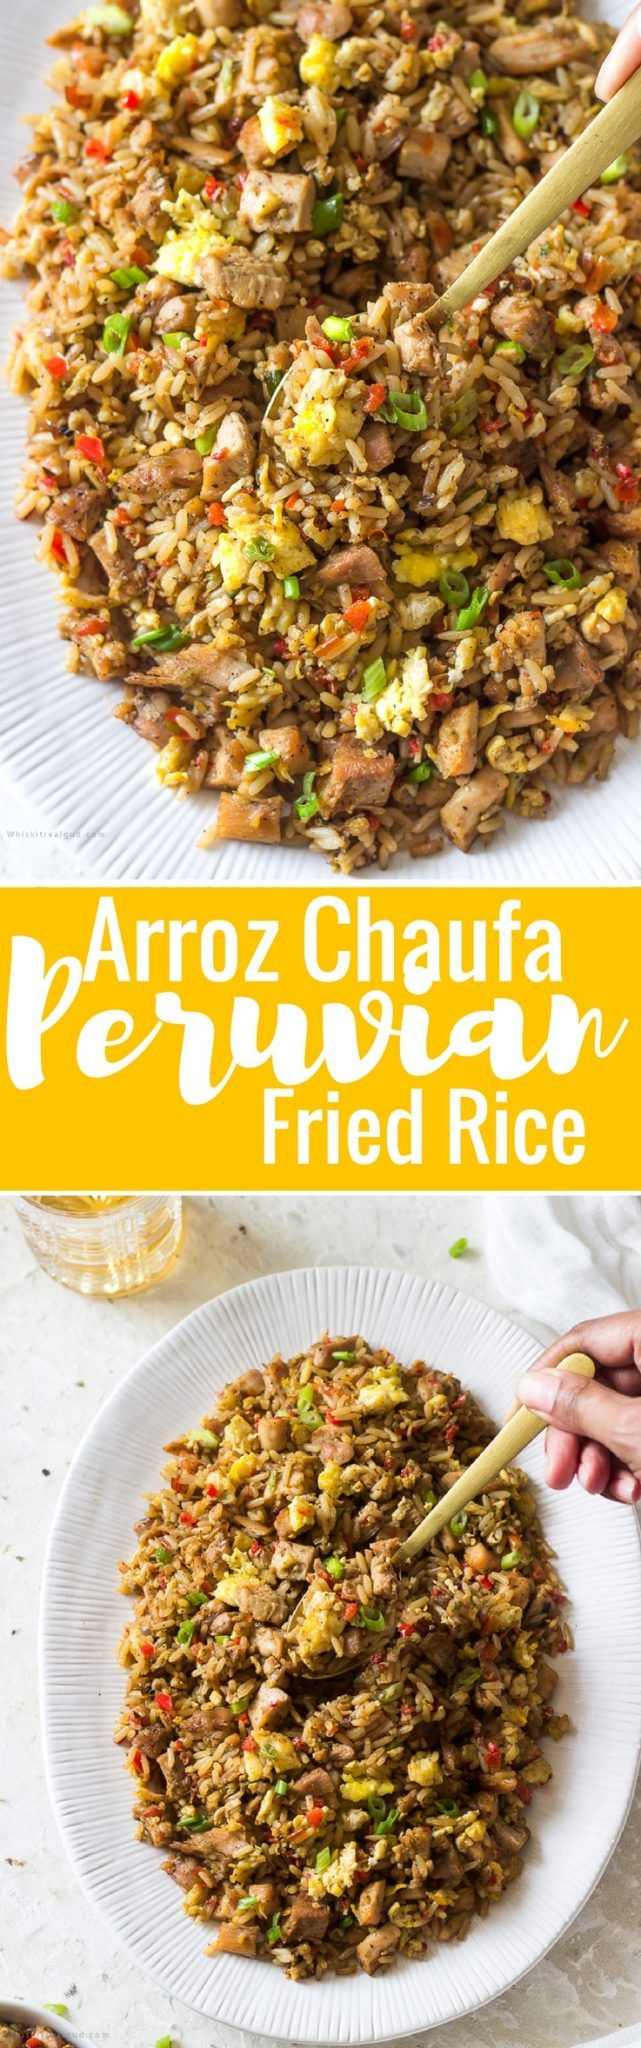 Arroz Chaufa is Peruvian's version of Chinese fried rice. It is influenced by the influx of Chinese immigrants to Peru. Peru's fried rice version consists of rice, sweet peppers, green onions, onions, garlic, soy sauce, scrambled eggs chicken and a dash of sesame oil, ginger and cumin. Amazingly delicious and you probably already have all the ingredients to make this!